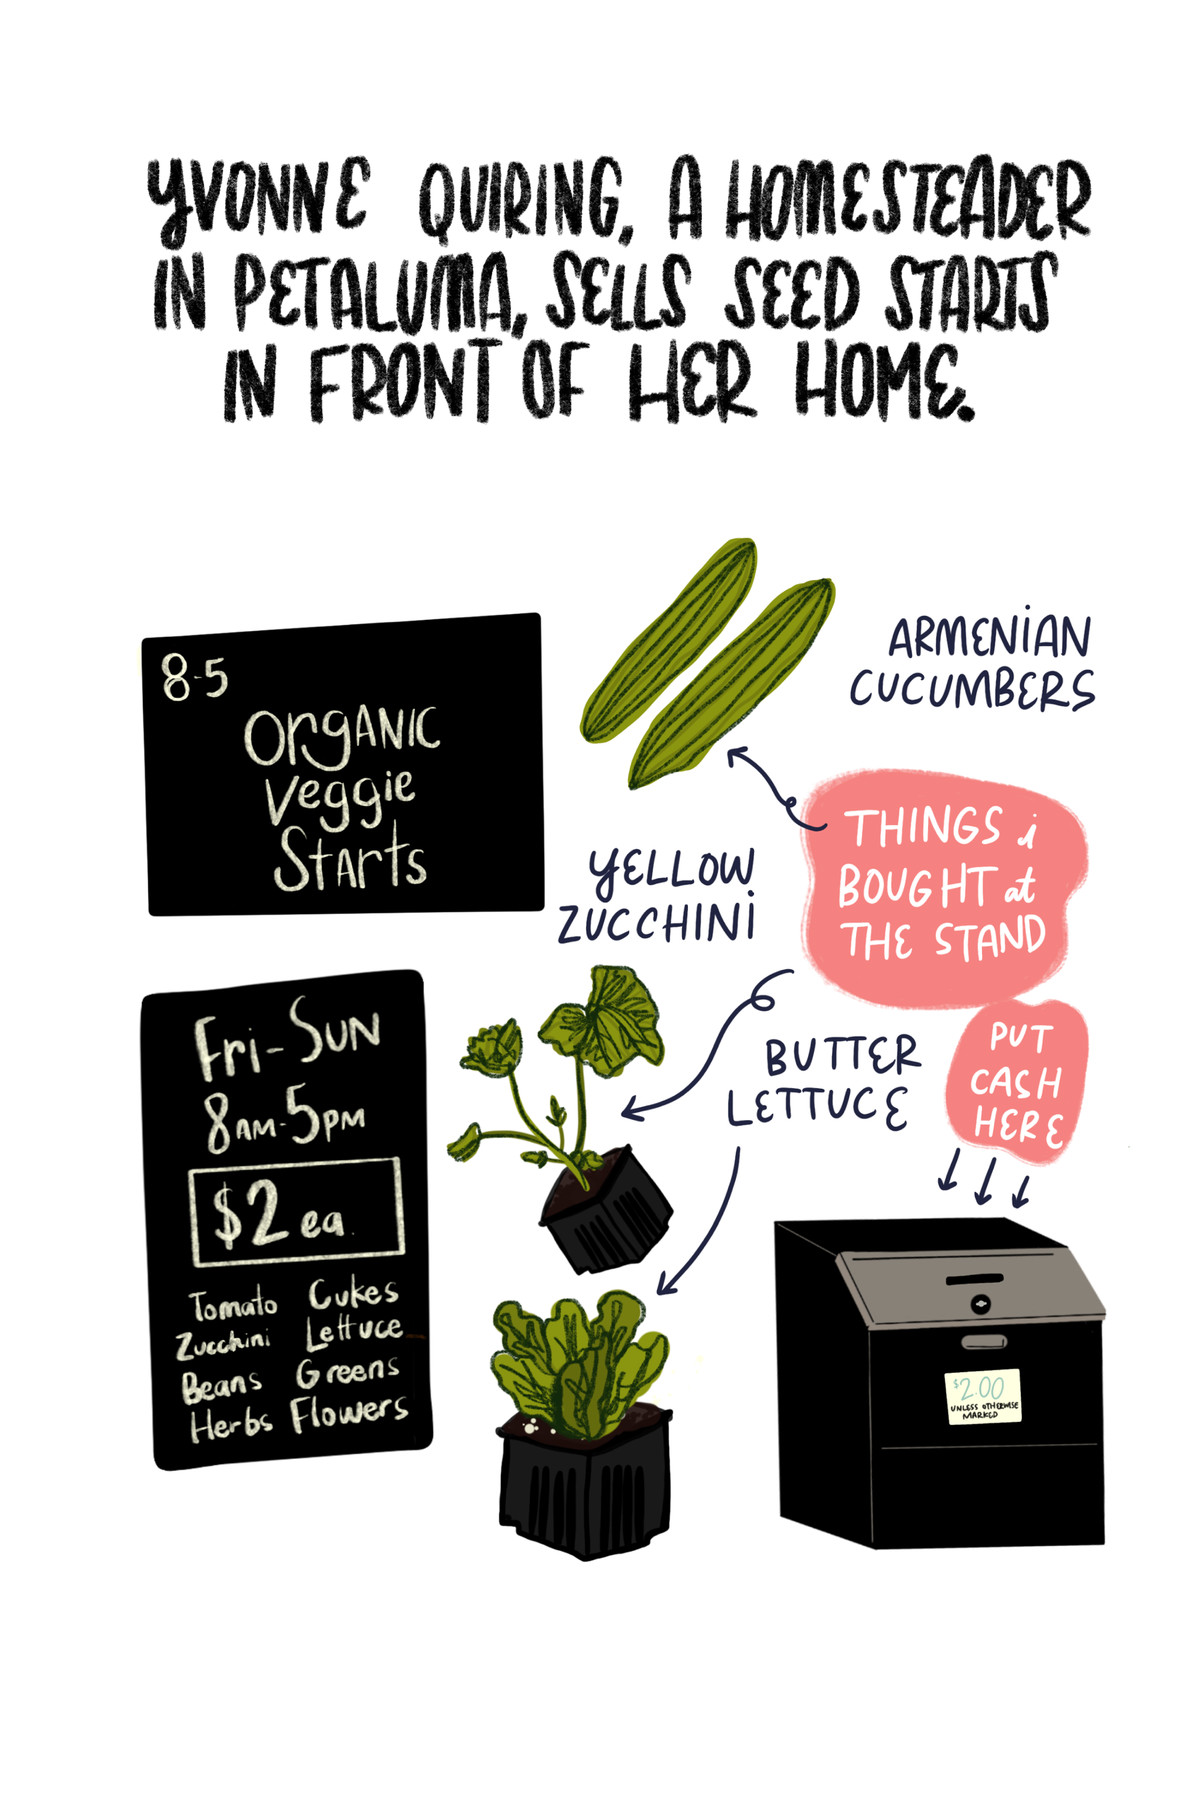 """""""Yvonne Quiring, a homesteader in Petaluma, sells seed starts in front of her home."""" [Below are illustrations of Armenian cucumbers, yellow zucchini, and butter lettuce, along with a black cash box and a sign advertising the farm stand's days, hours, and produce menu.]"""